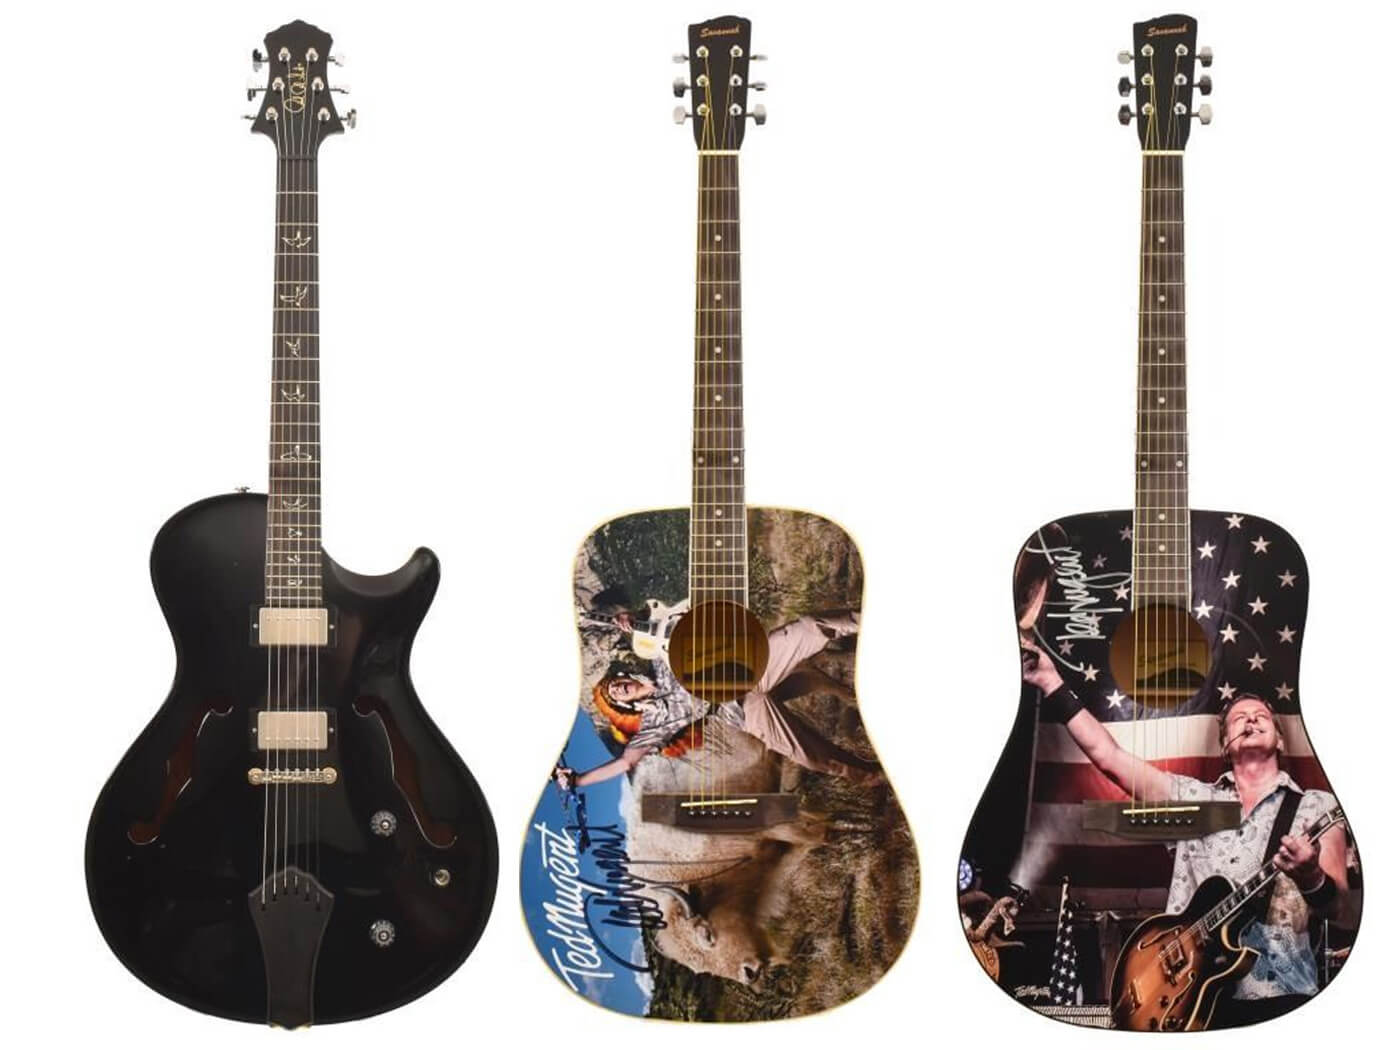 Some of Ted Nugent's guitars being auctioned